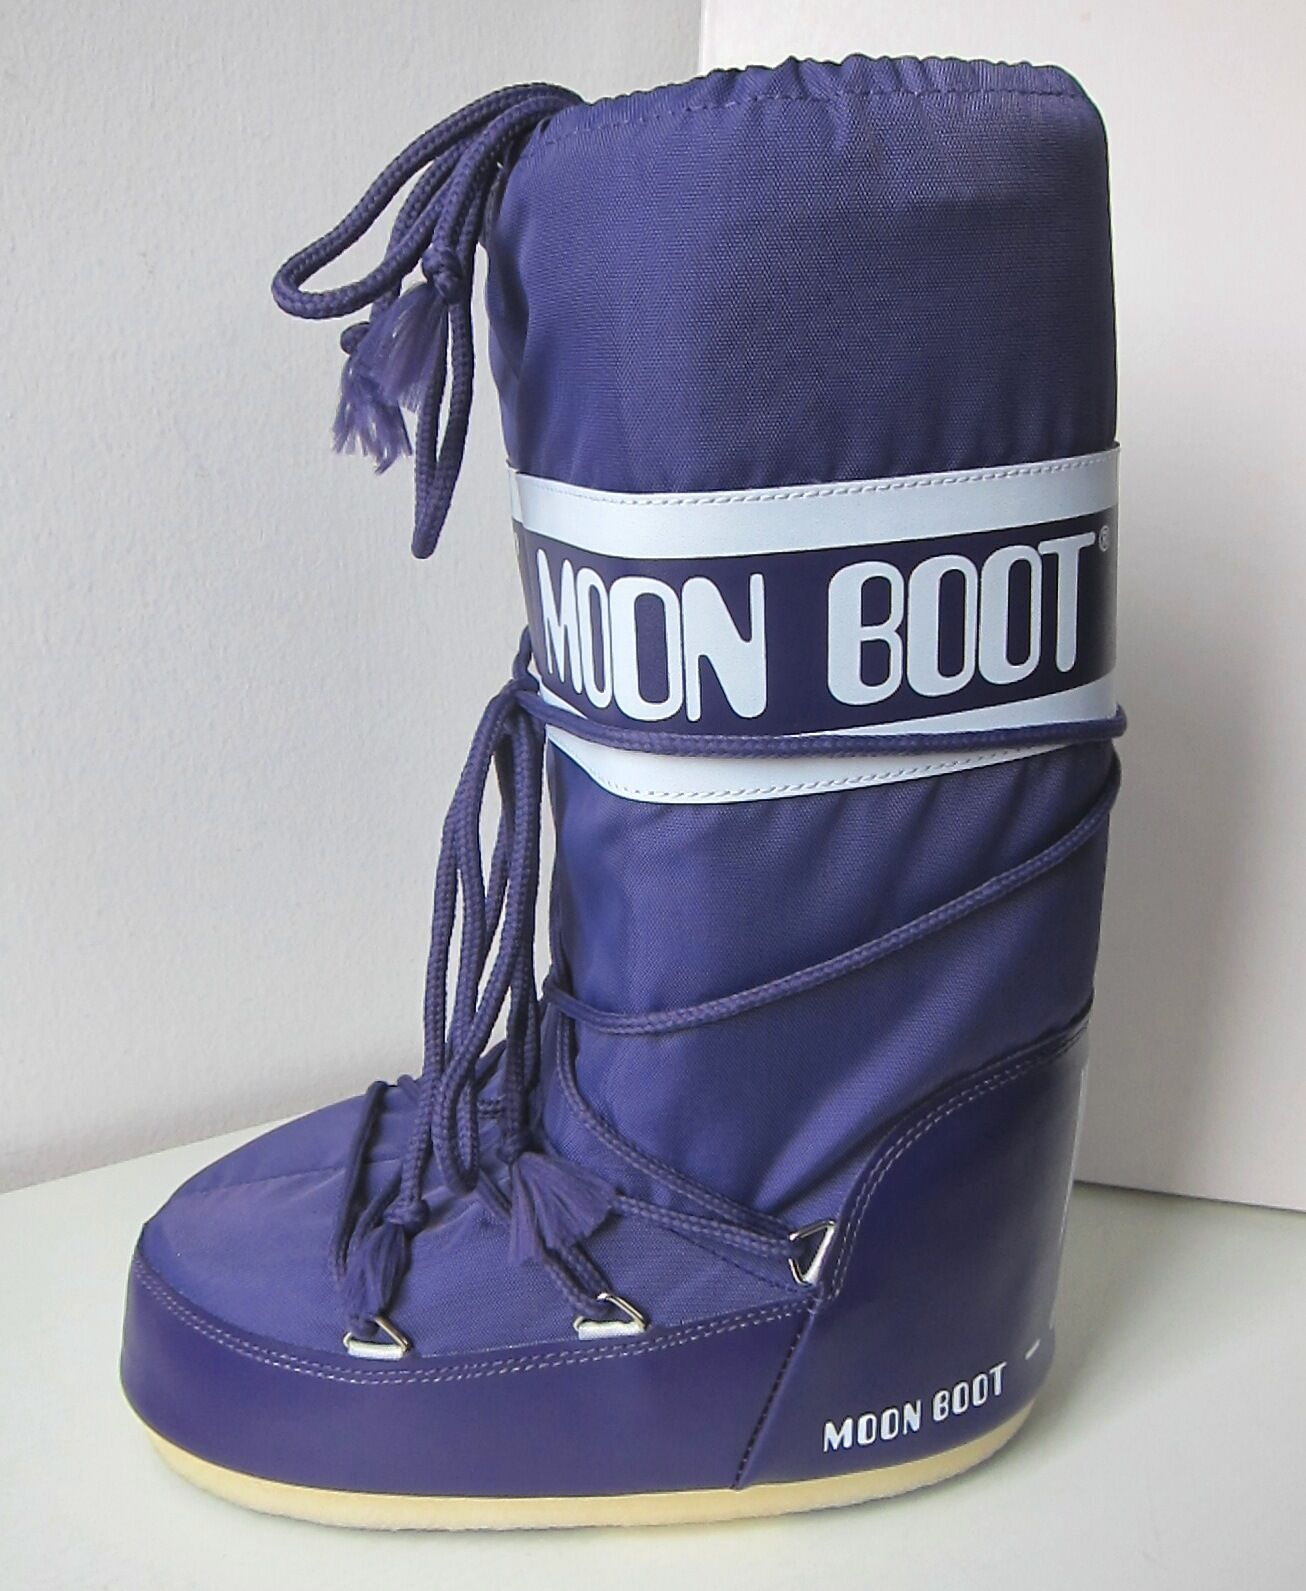 3538 Boots Moon Tecnica Viola Boot Taille Violet Nylon Lilac 7O7Svq